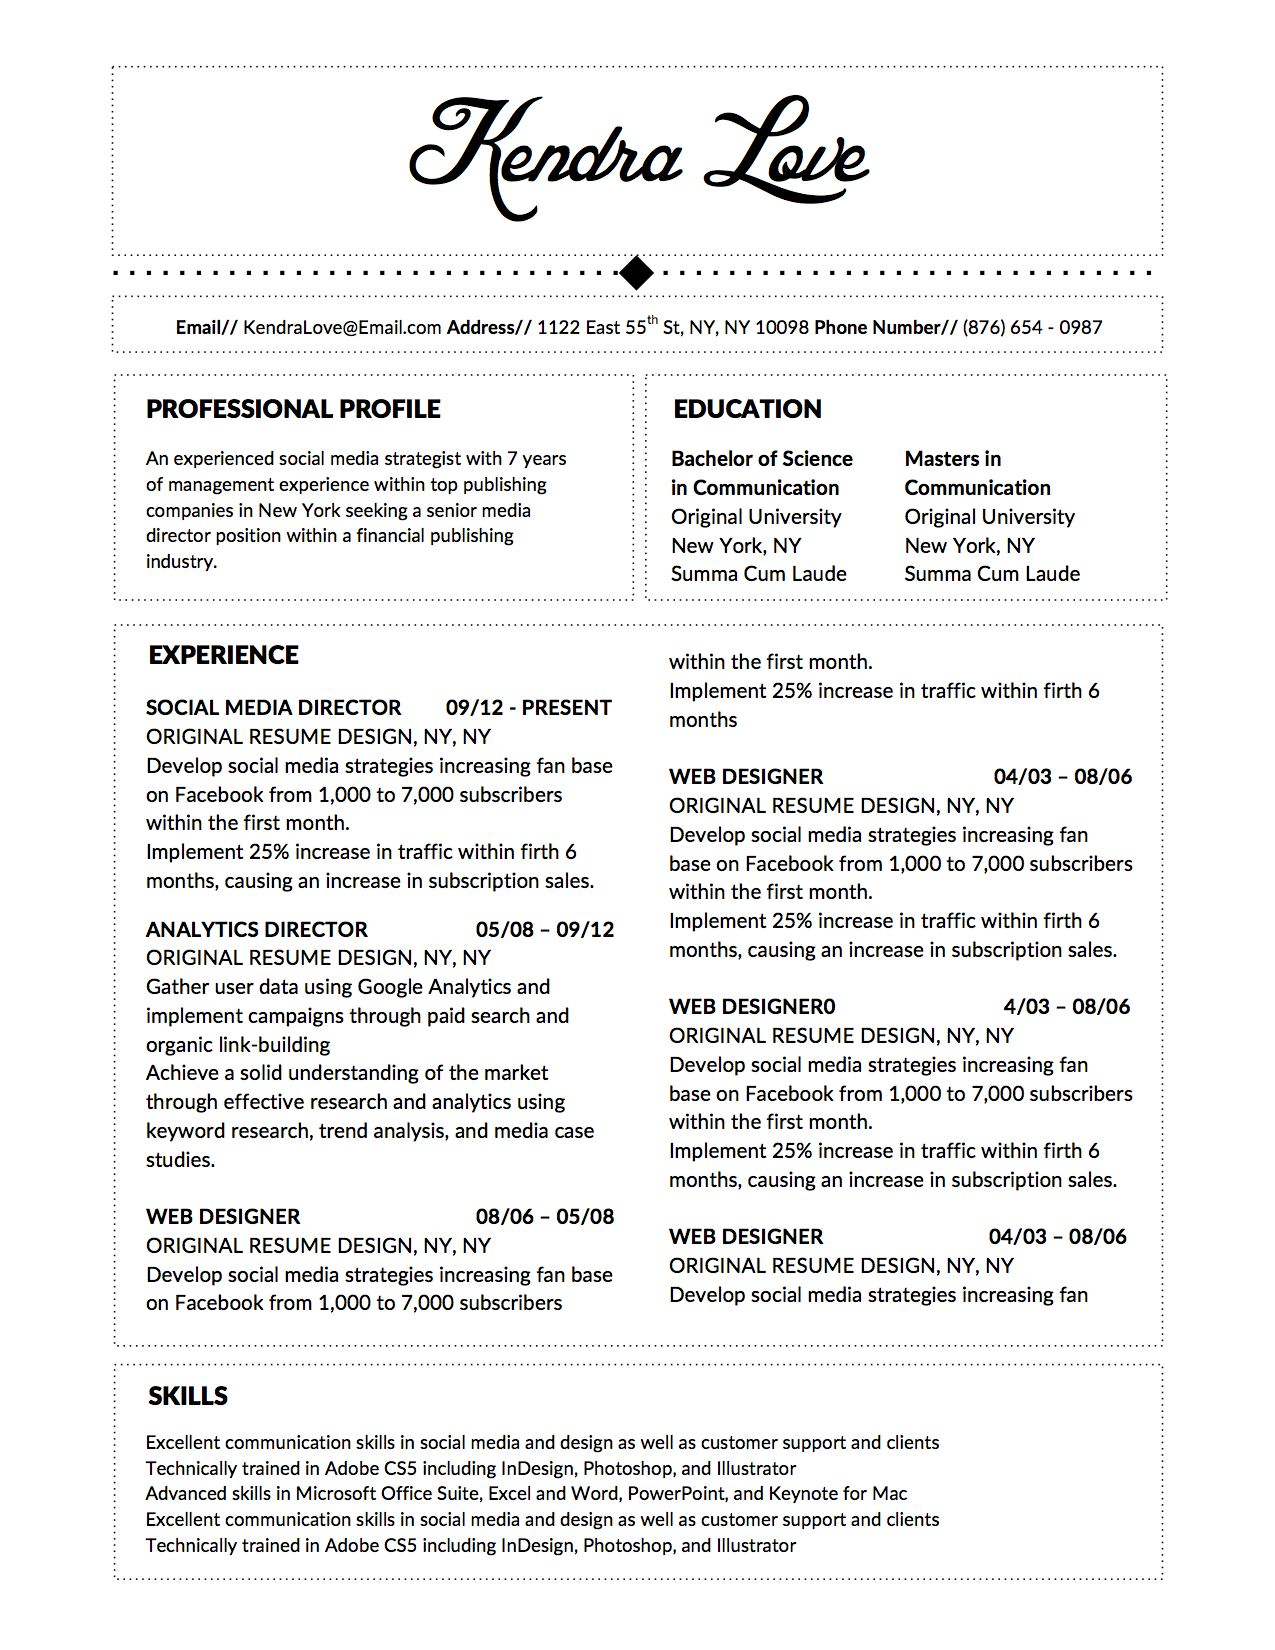 Kendra Love Resume Template for Microsoft Word | Resume Press ...